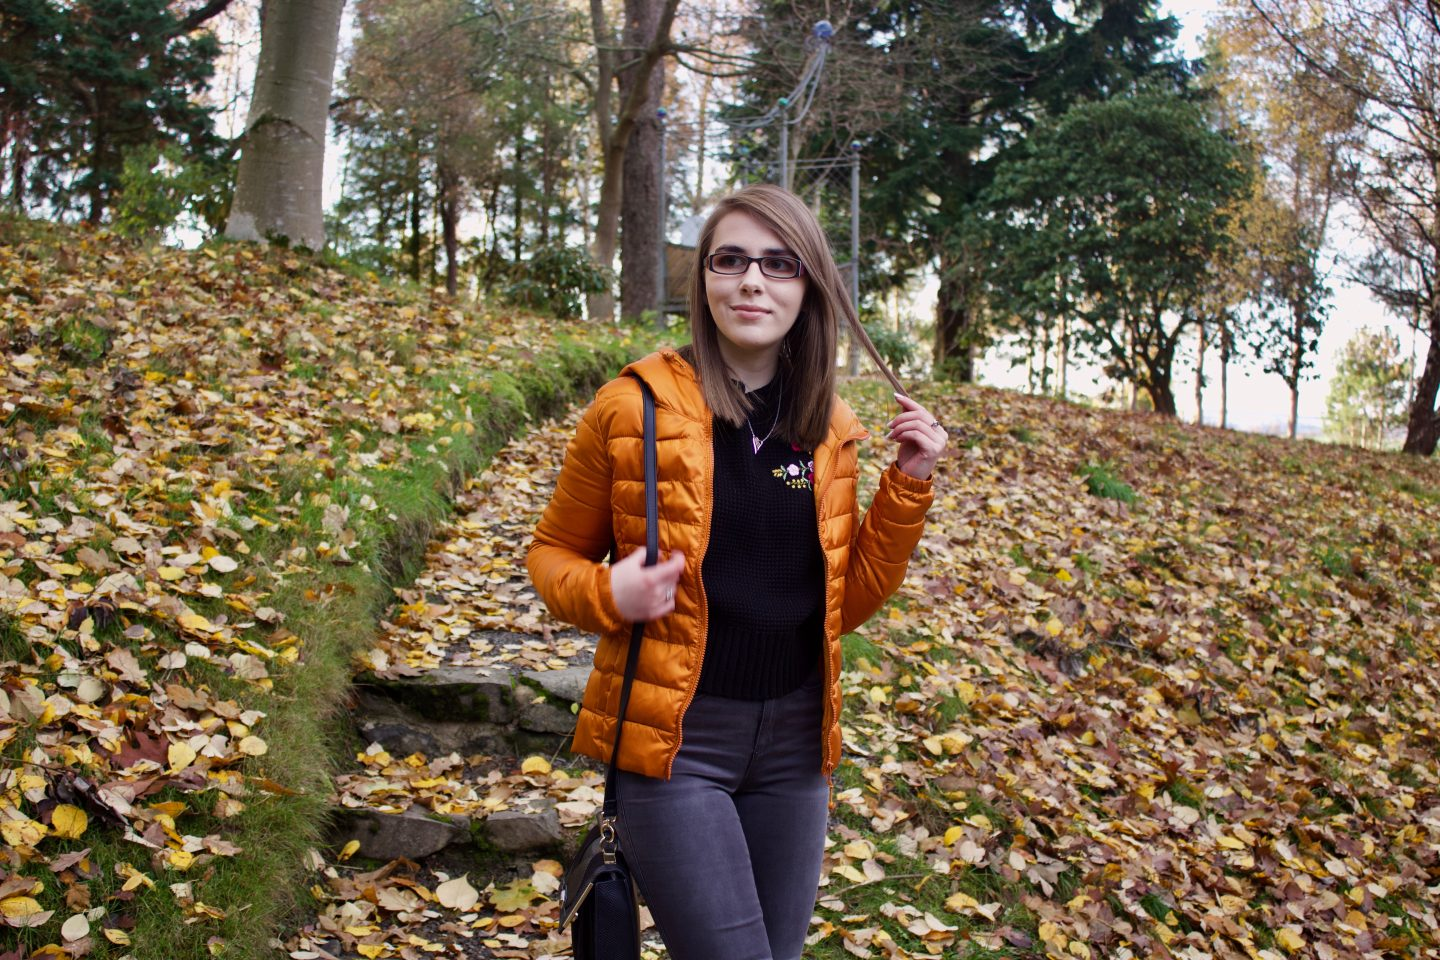 A photo of Elin wearing a black knitted jumper and orange/marmelade coloured quilted jacket, she is standing on some steps in a woodland and there are colourful leaves on the floor around her, her hand is up, holding a strand of hair and she is looking away from the camera